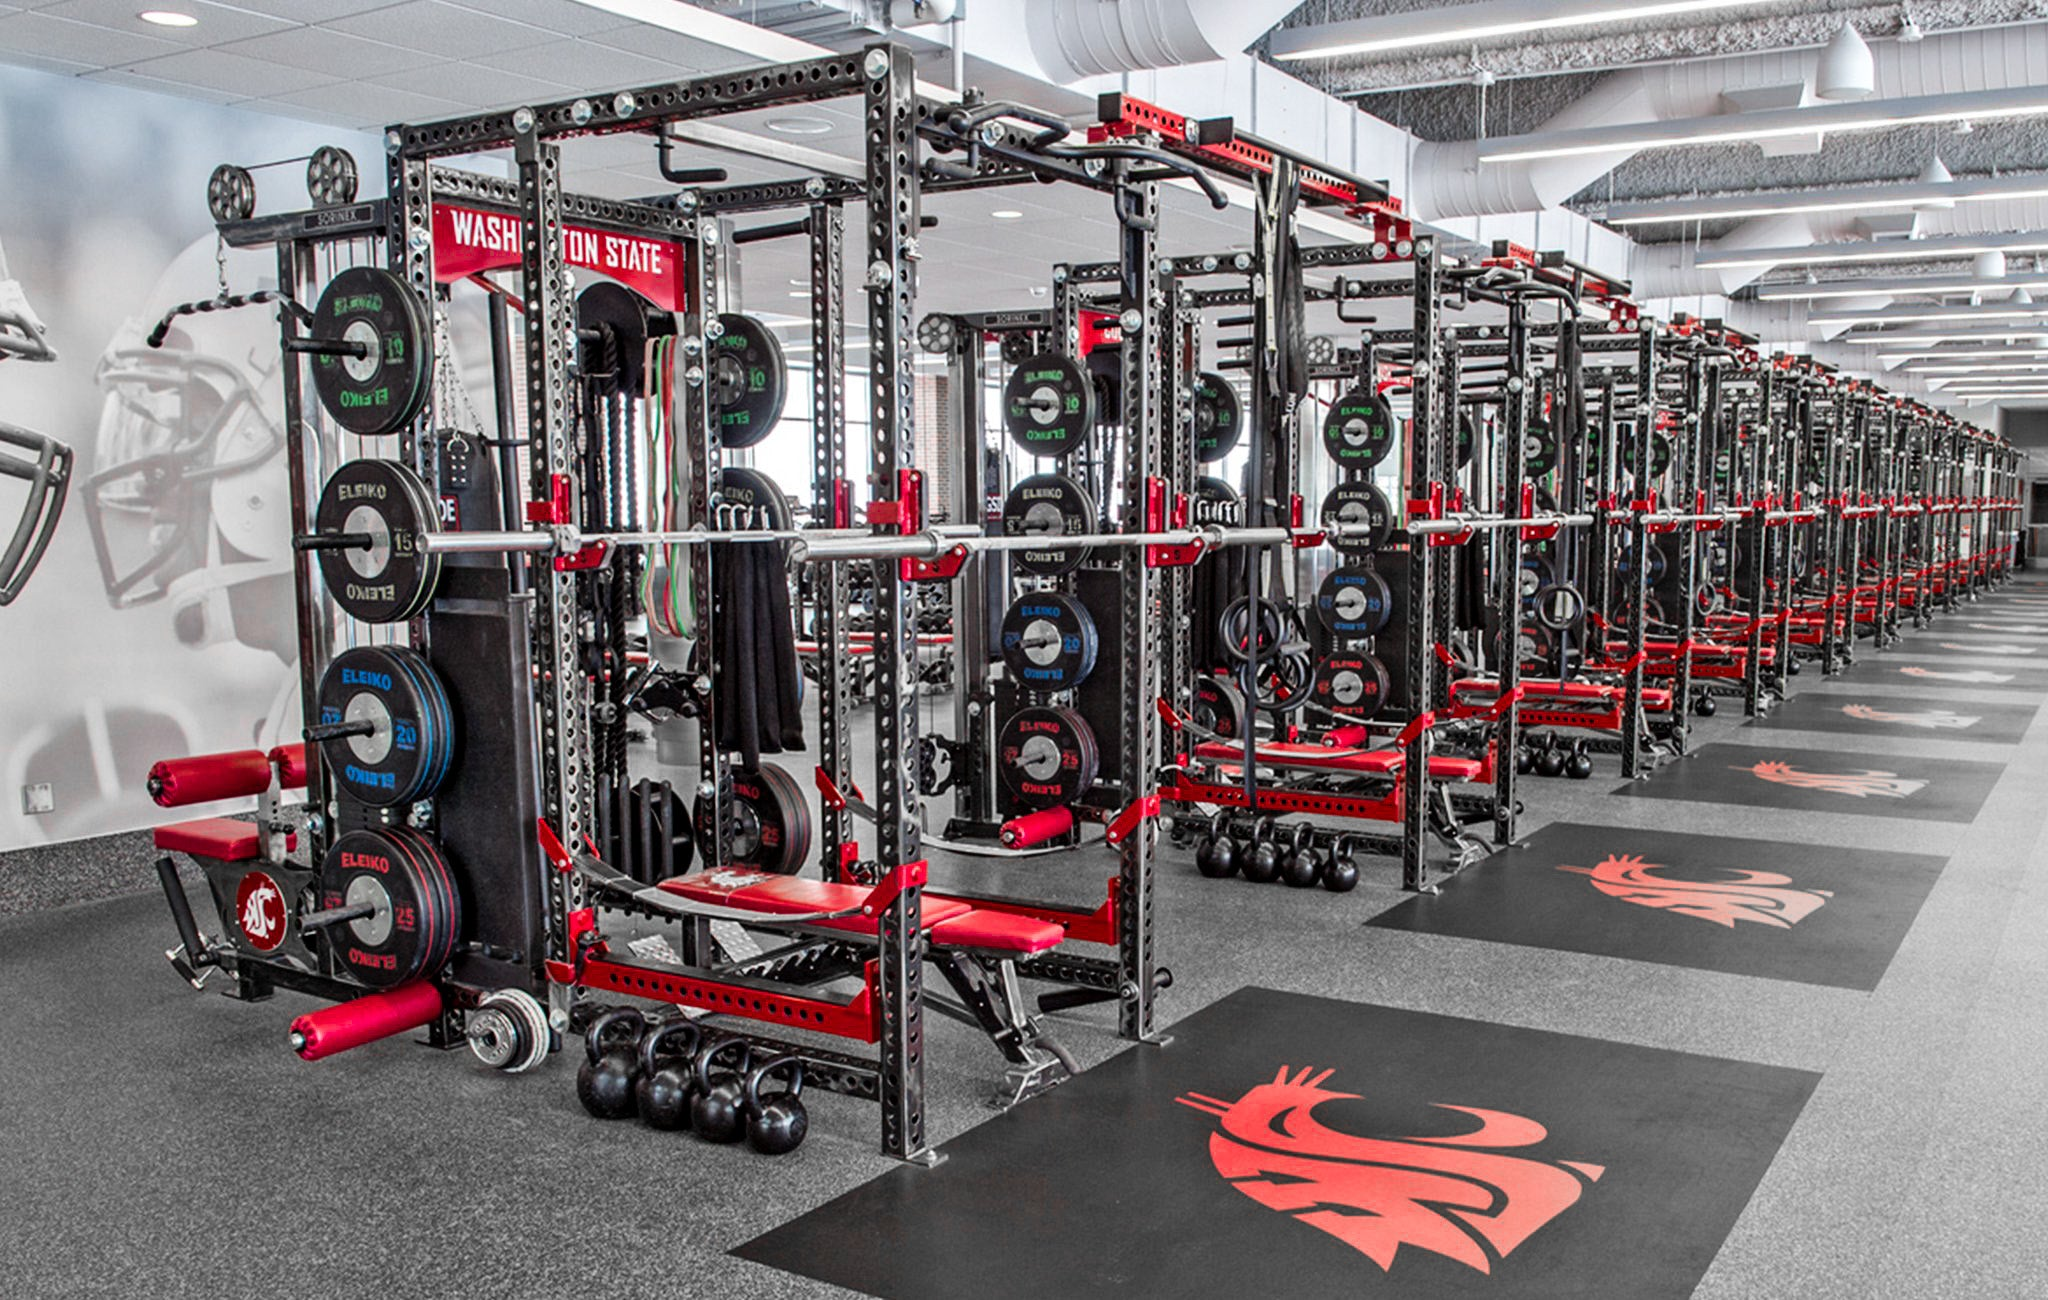 Washington State University Weight Room